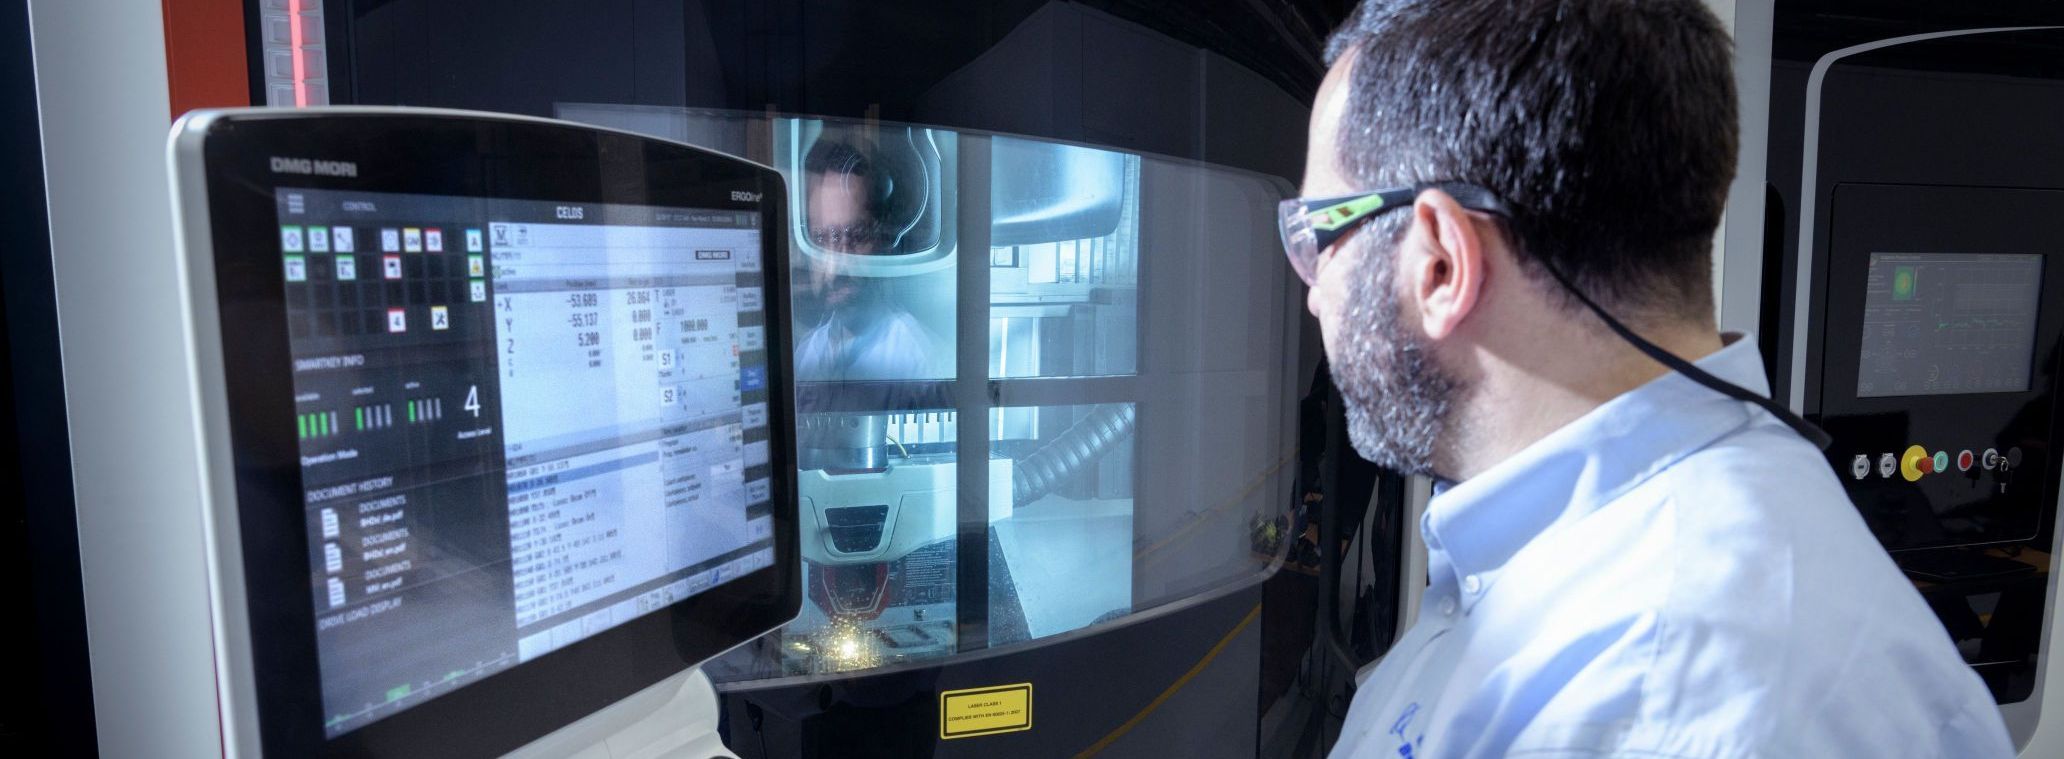 Employee working with machinery